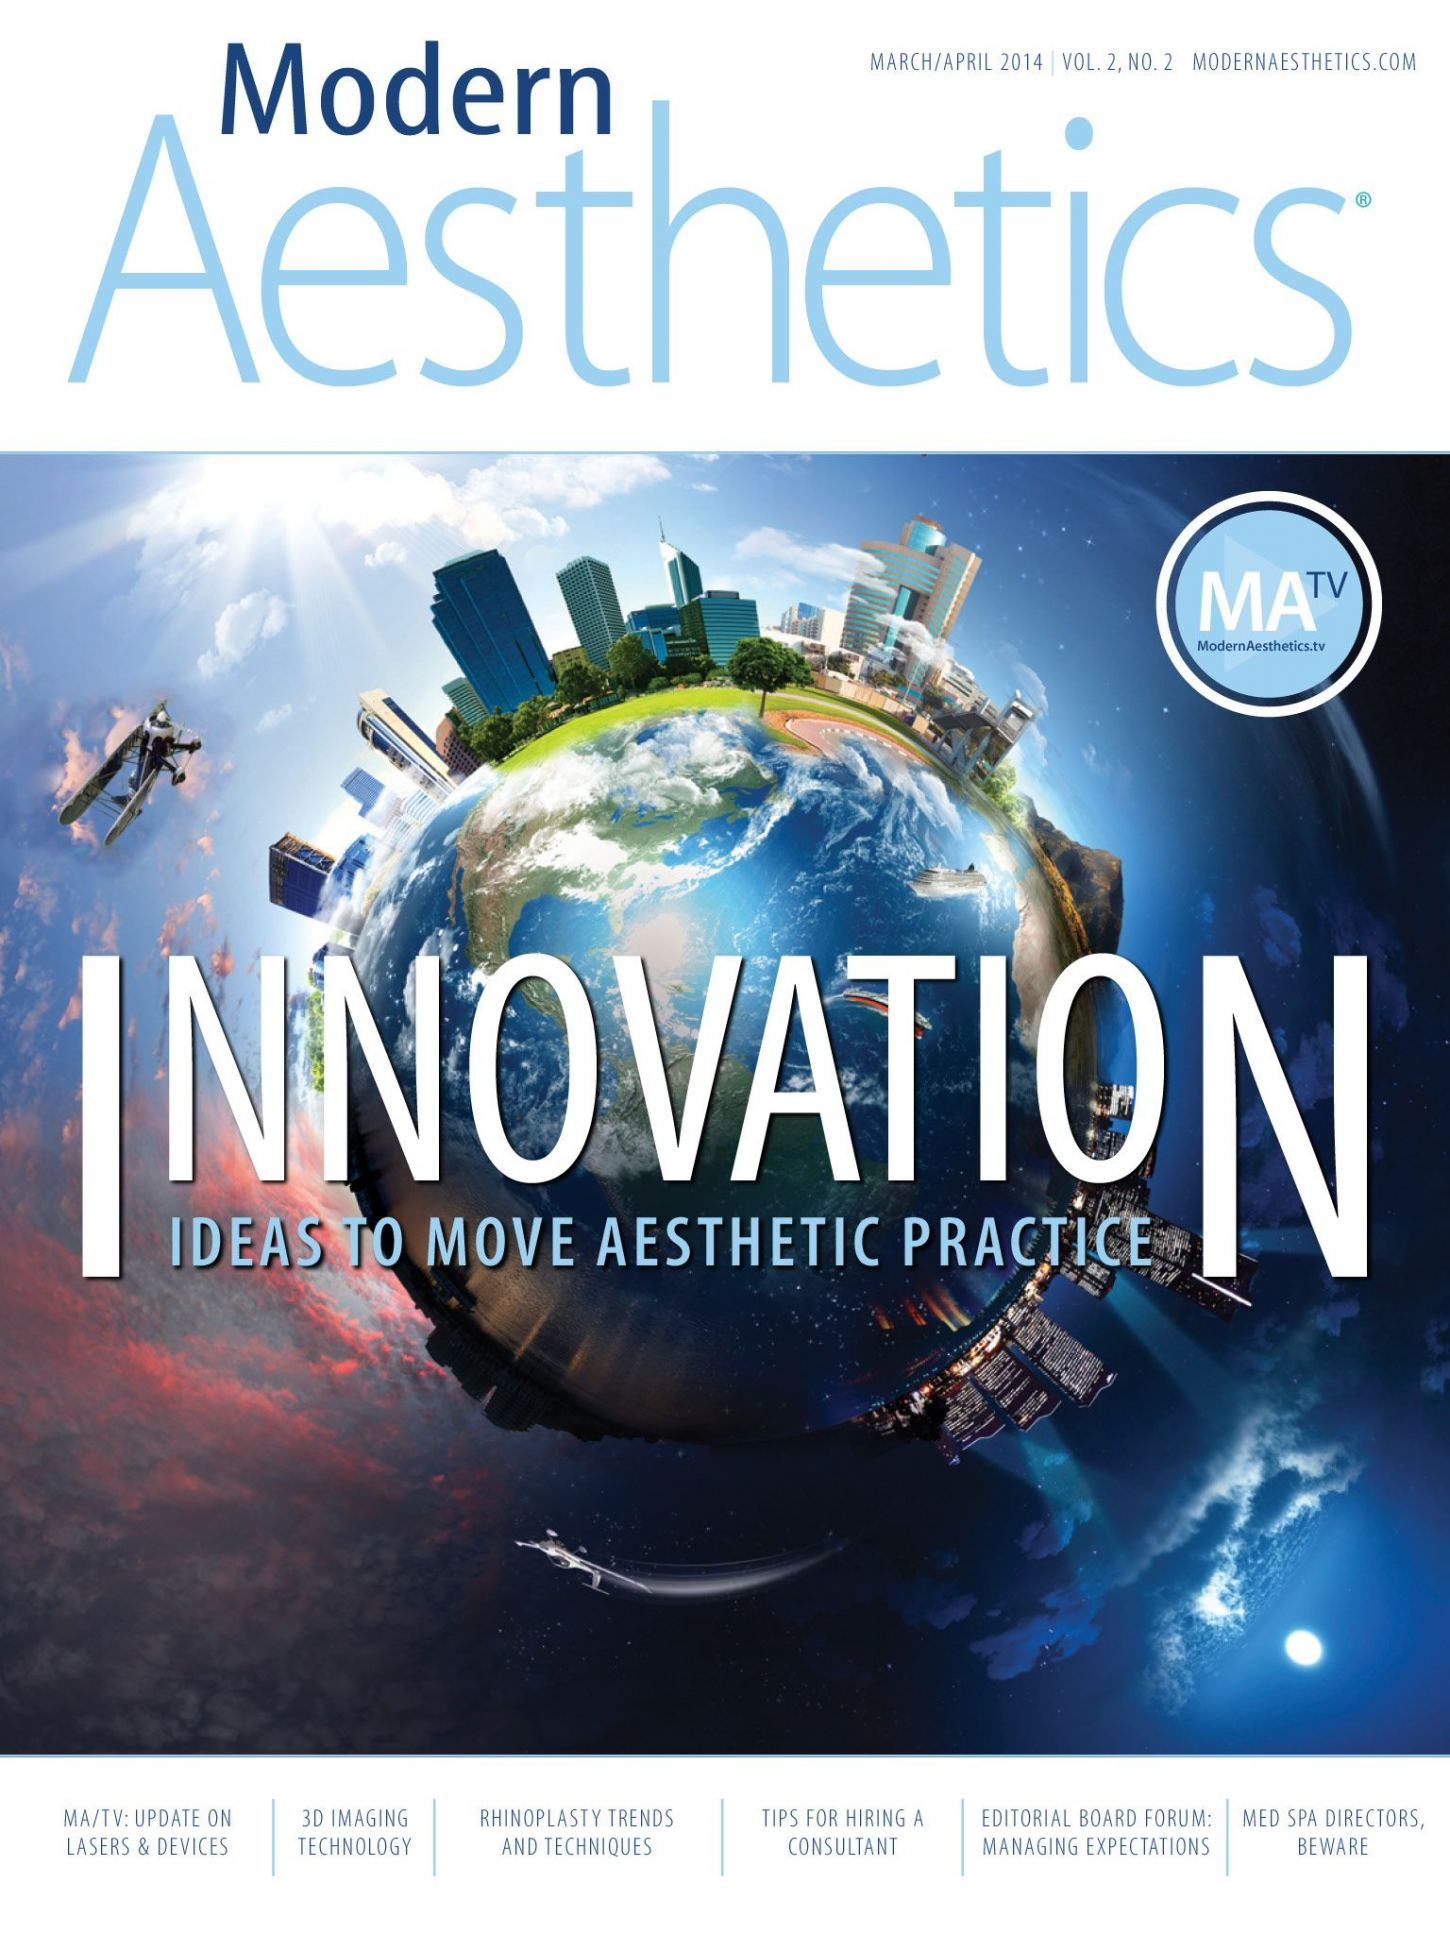 The April 2014 Modern Aesthetics® App with the cover focus Innovation.